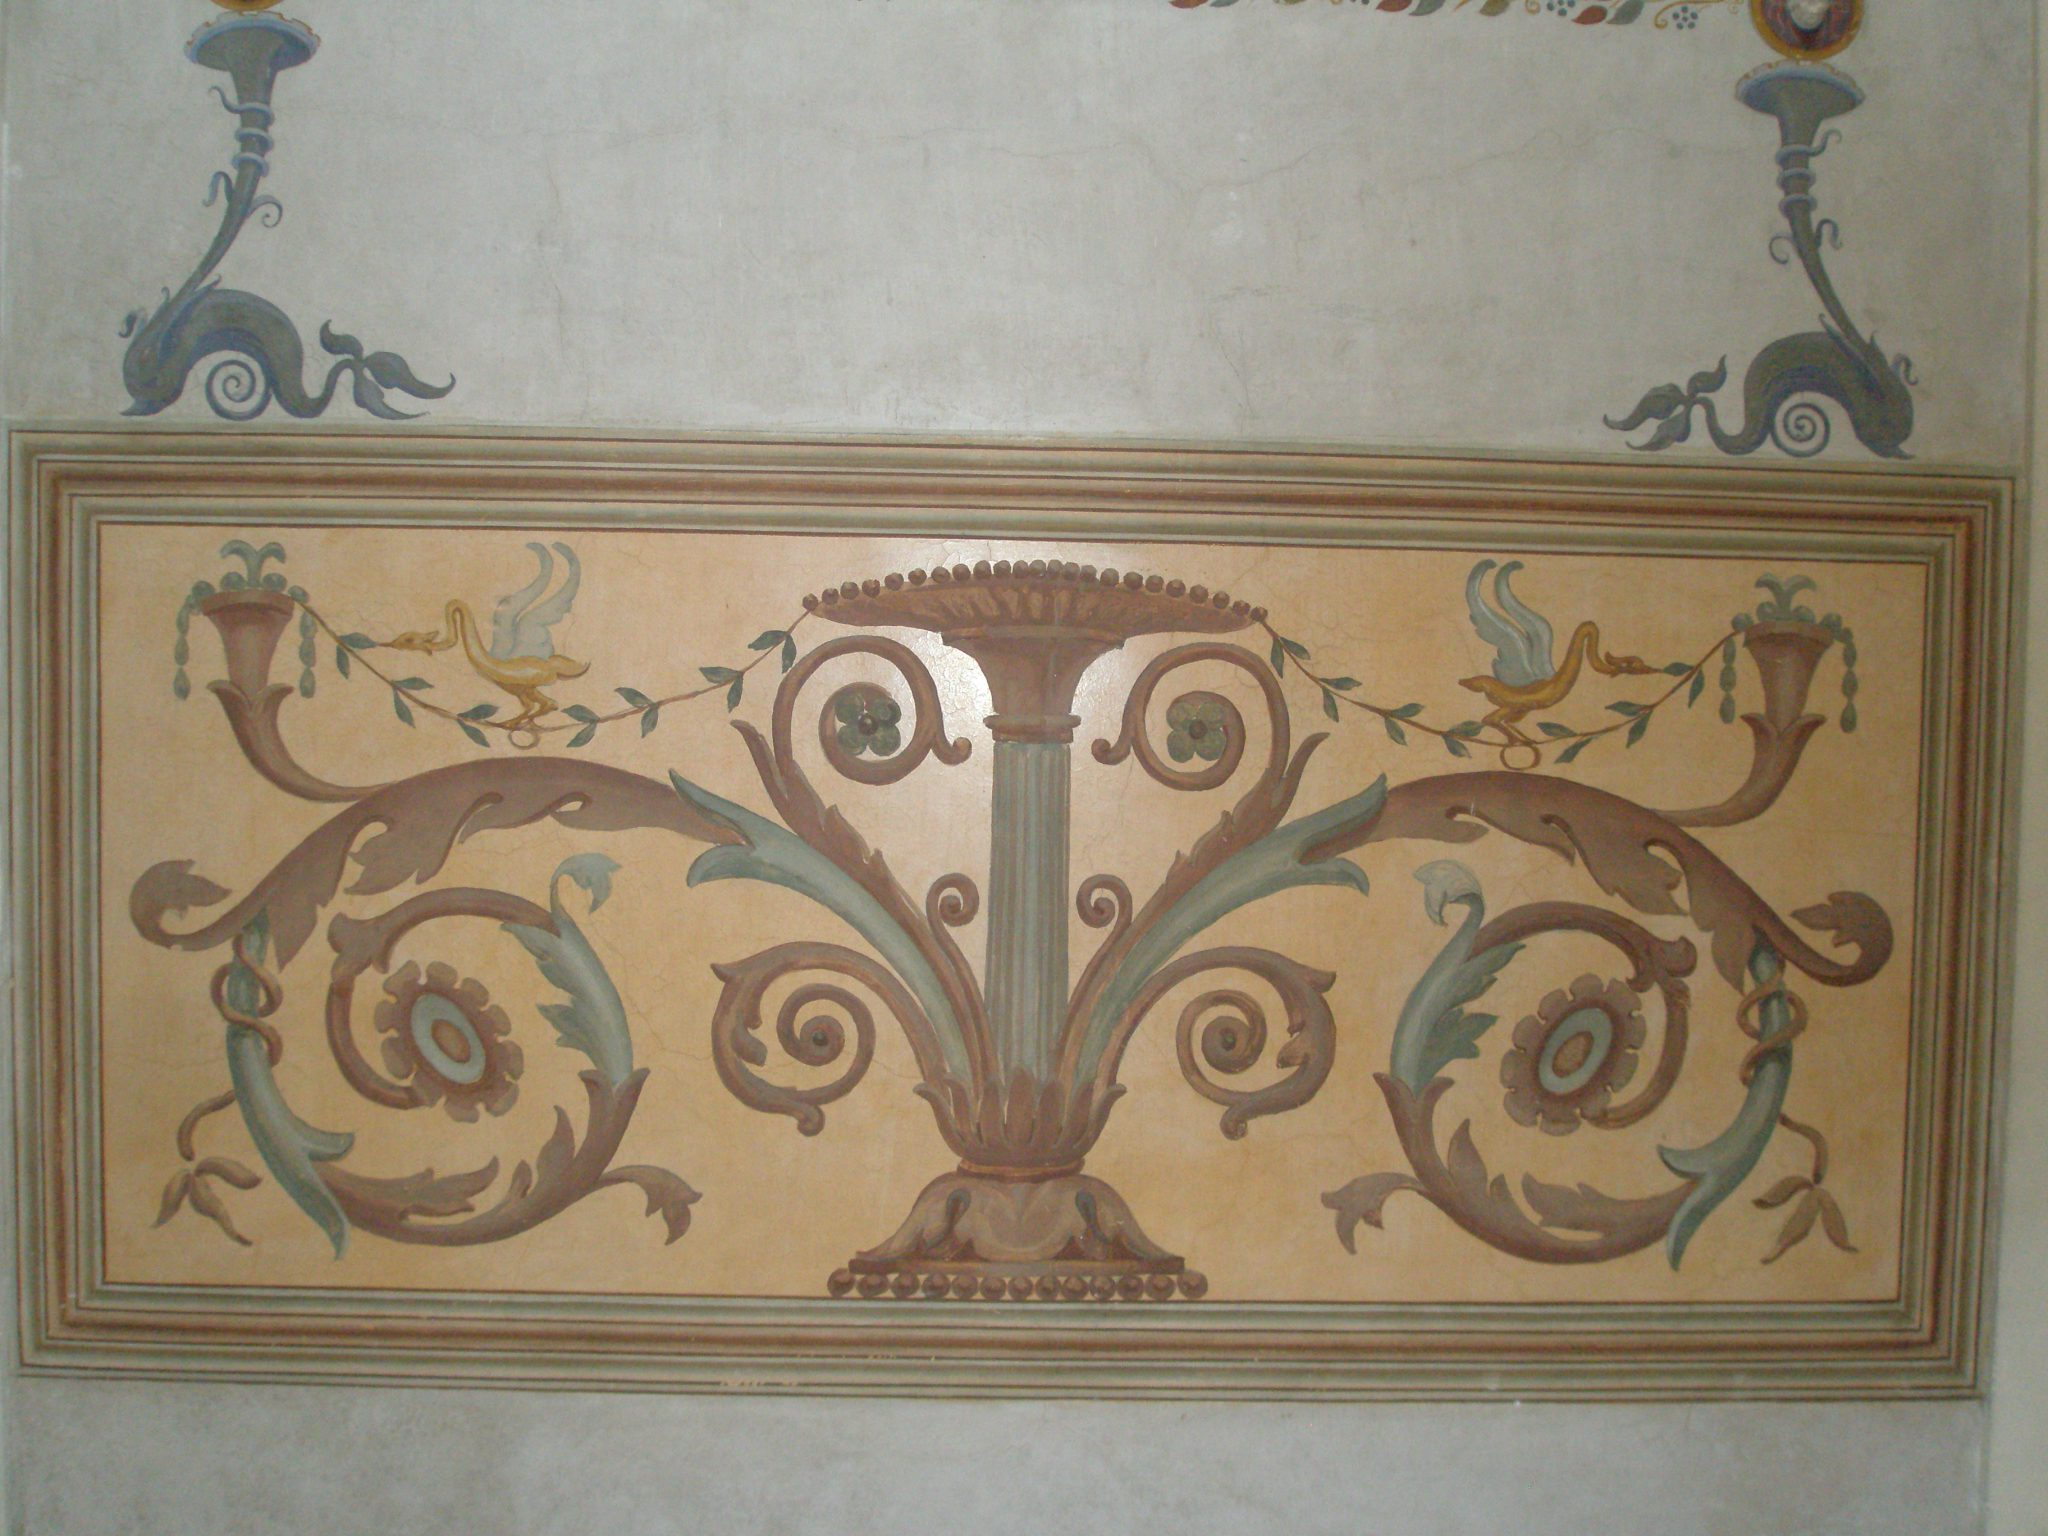 Detail of wall decoration in Venus' bailiwick.